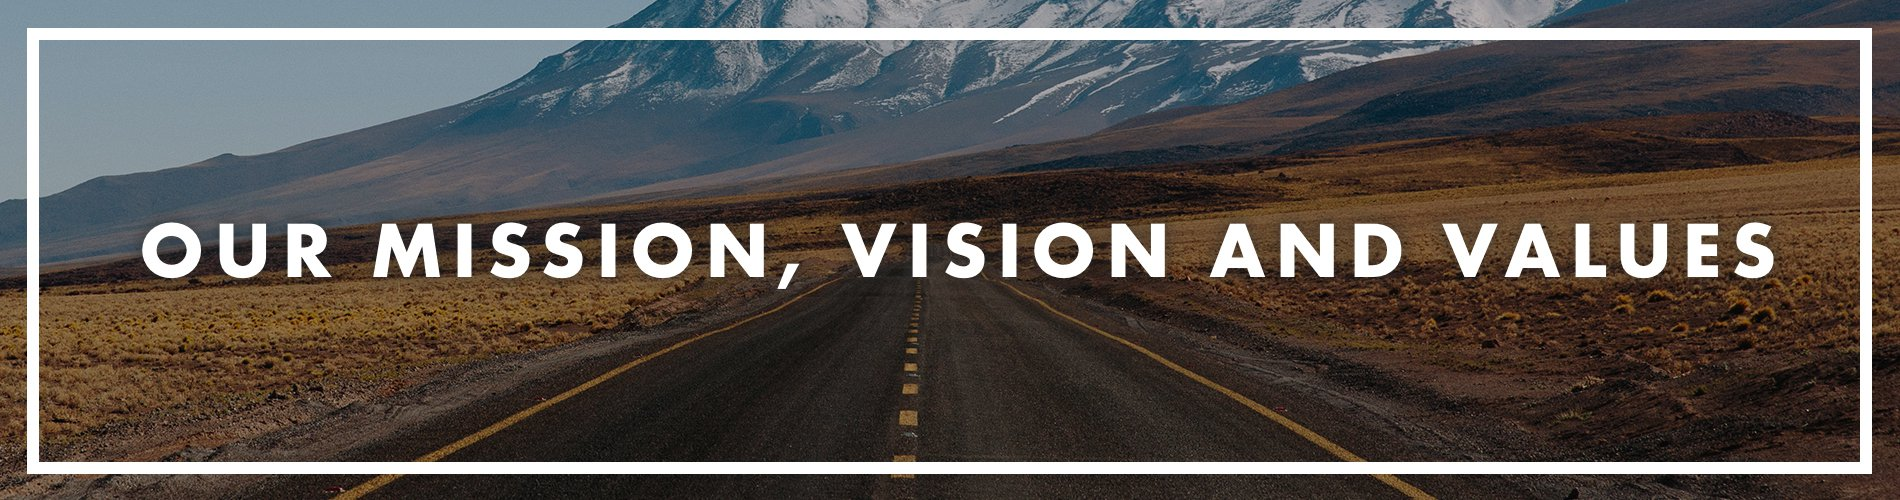 Mission, Vision and Values banner